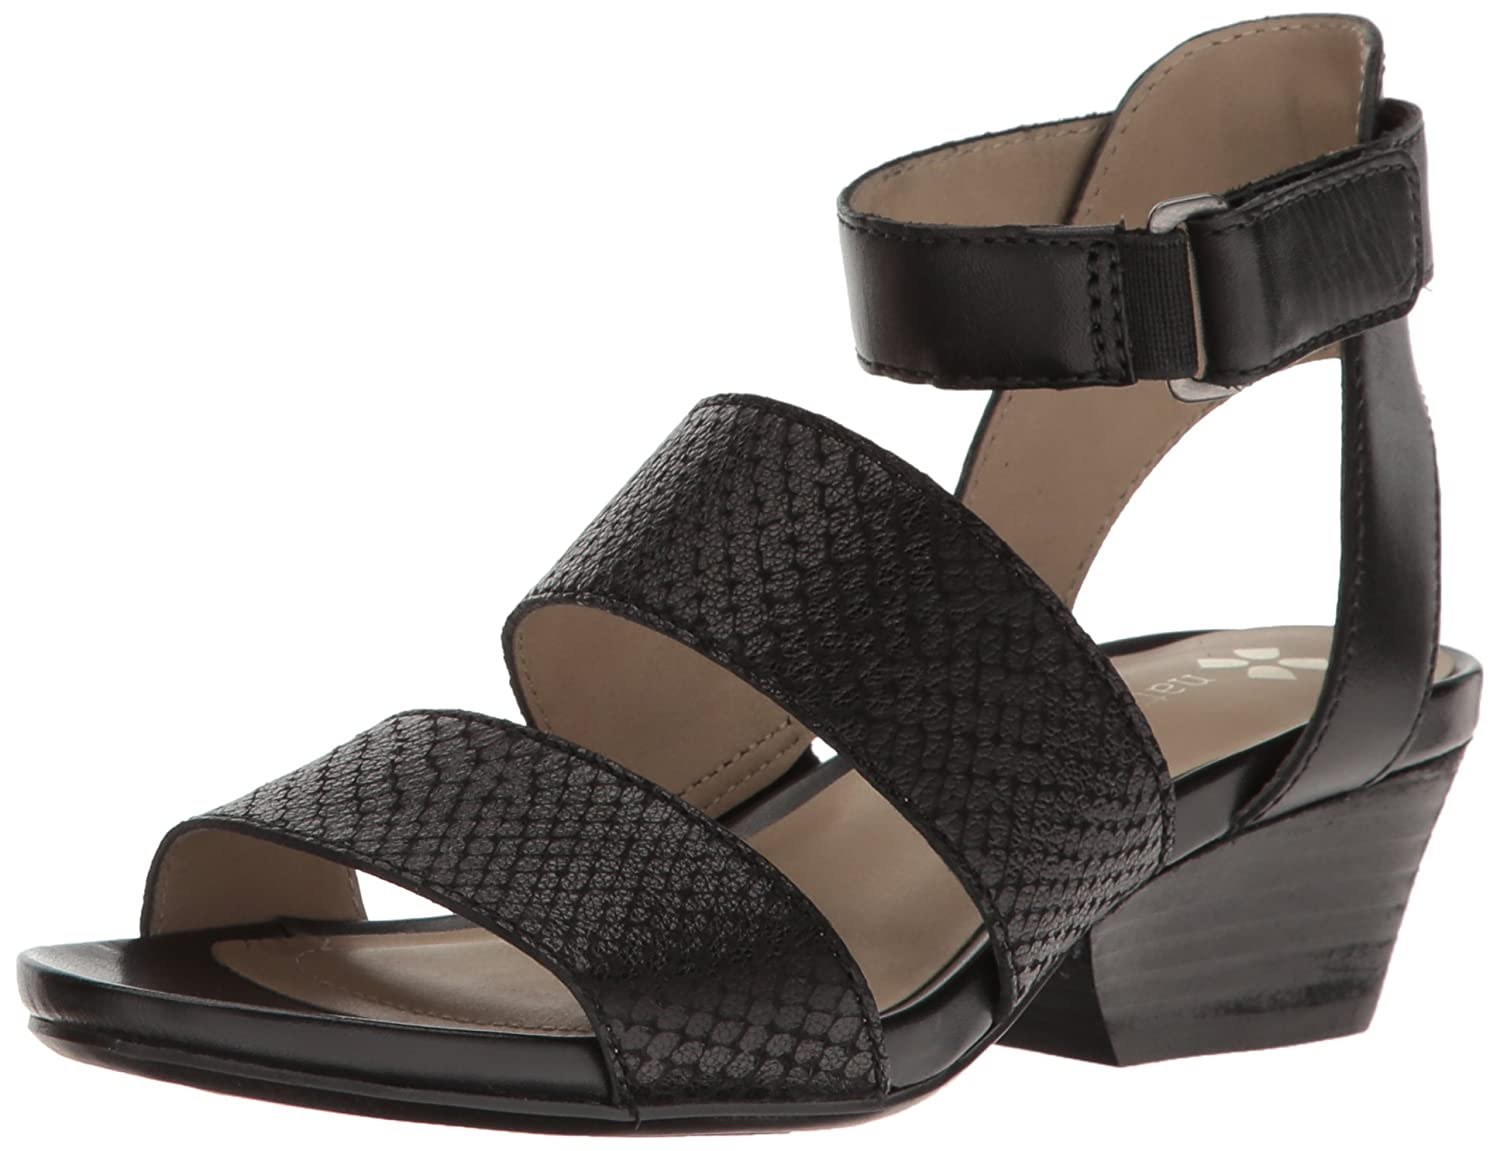 Black Naturalizer Womens Gracelyn Heeled Sandal